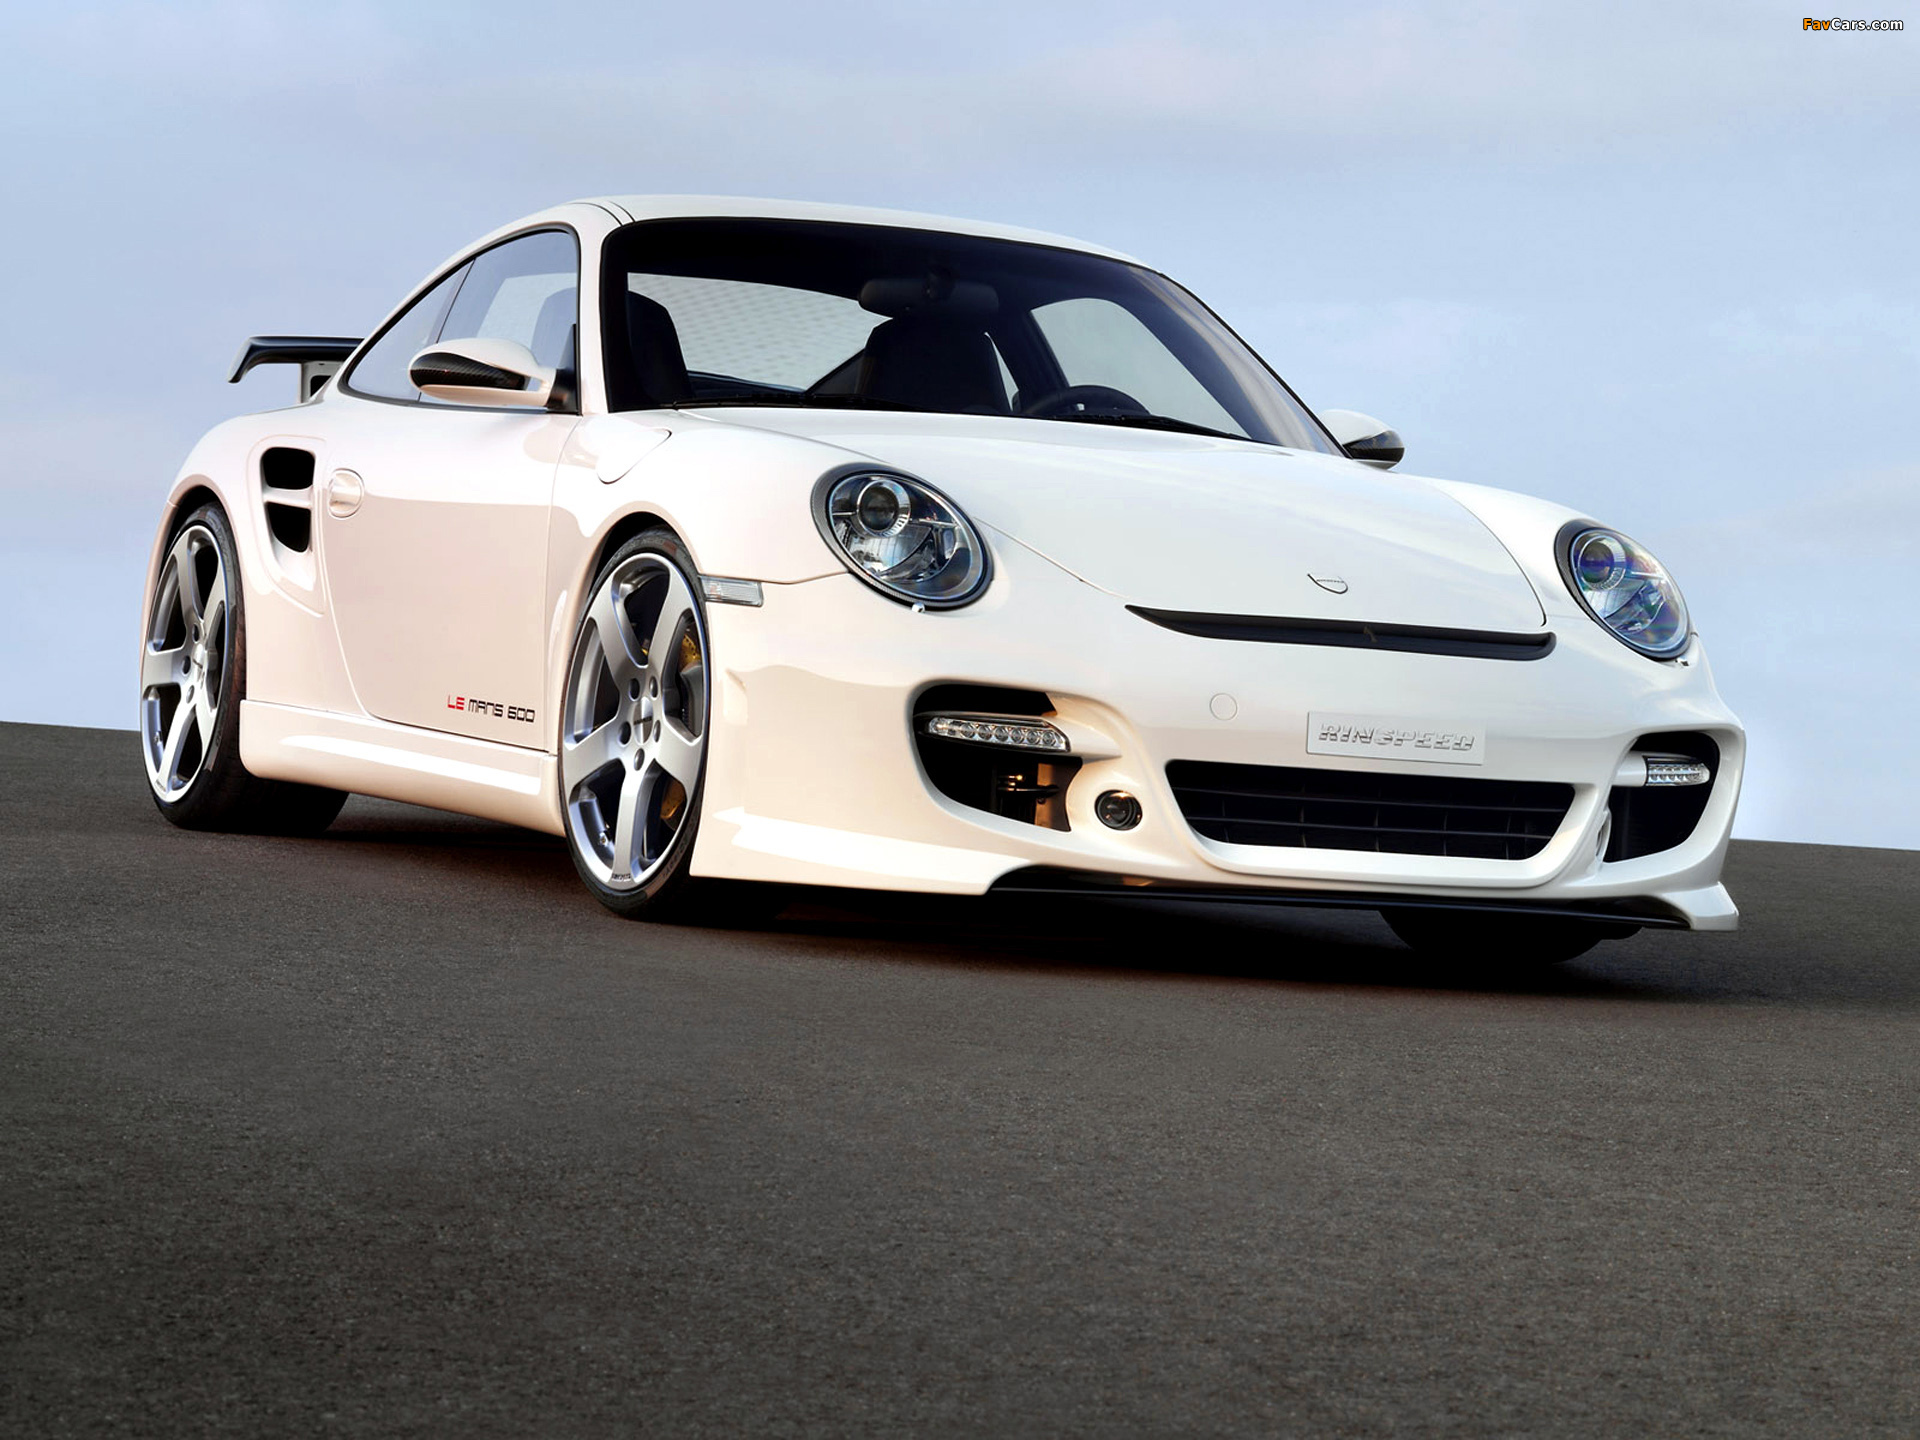 Rinspeed LeMans based on Porsche 911 Turbo (997) 2007 wallpapers (1920 x 1440)